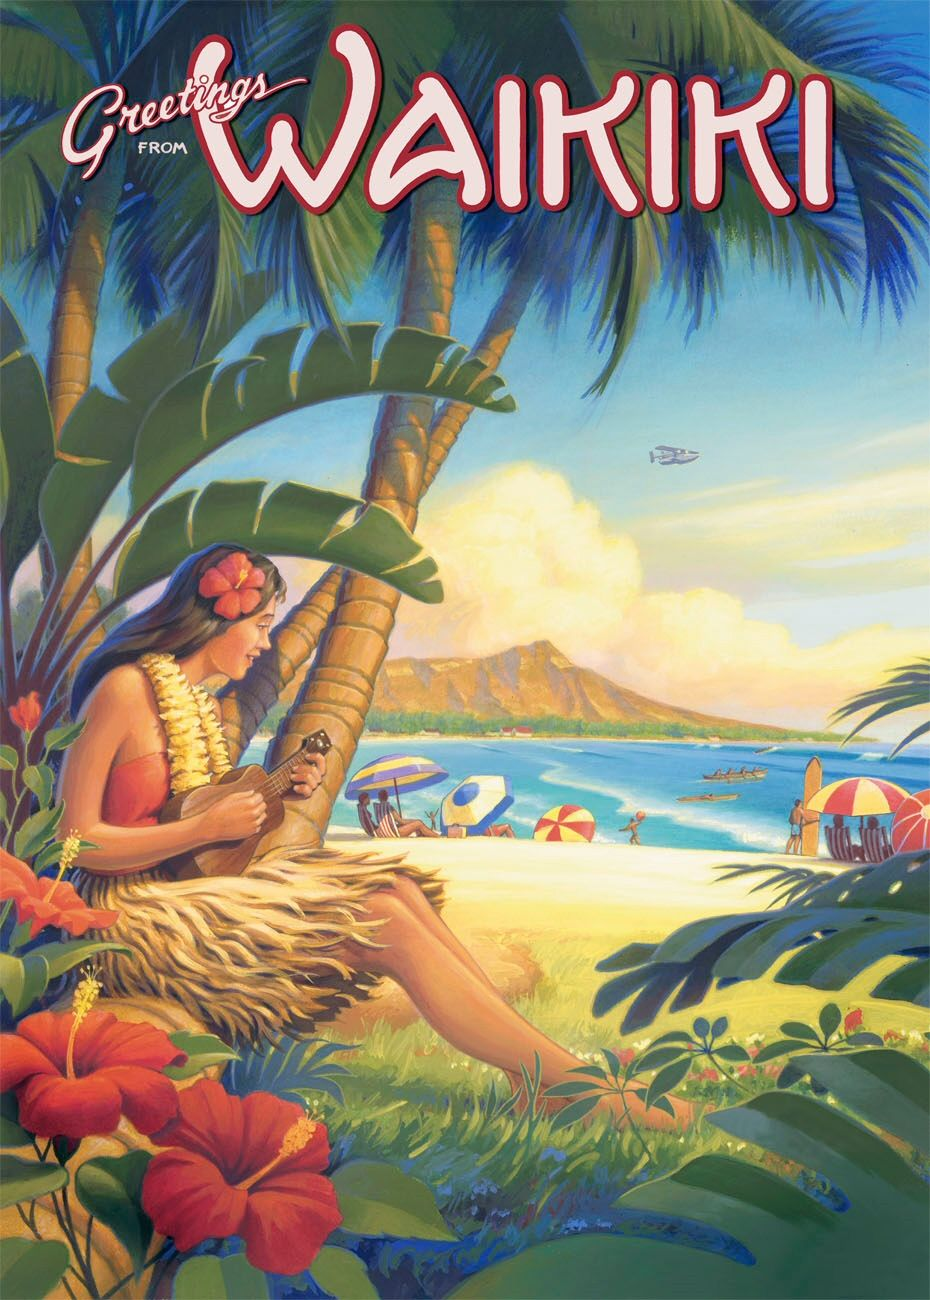 hawaii travel poster | vintage h a w a i i | Pinterest ...